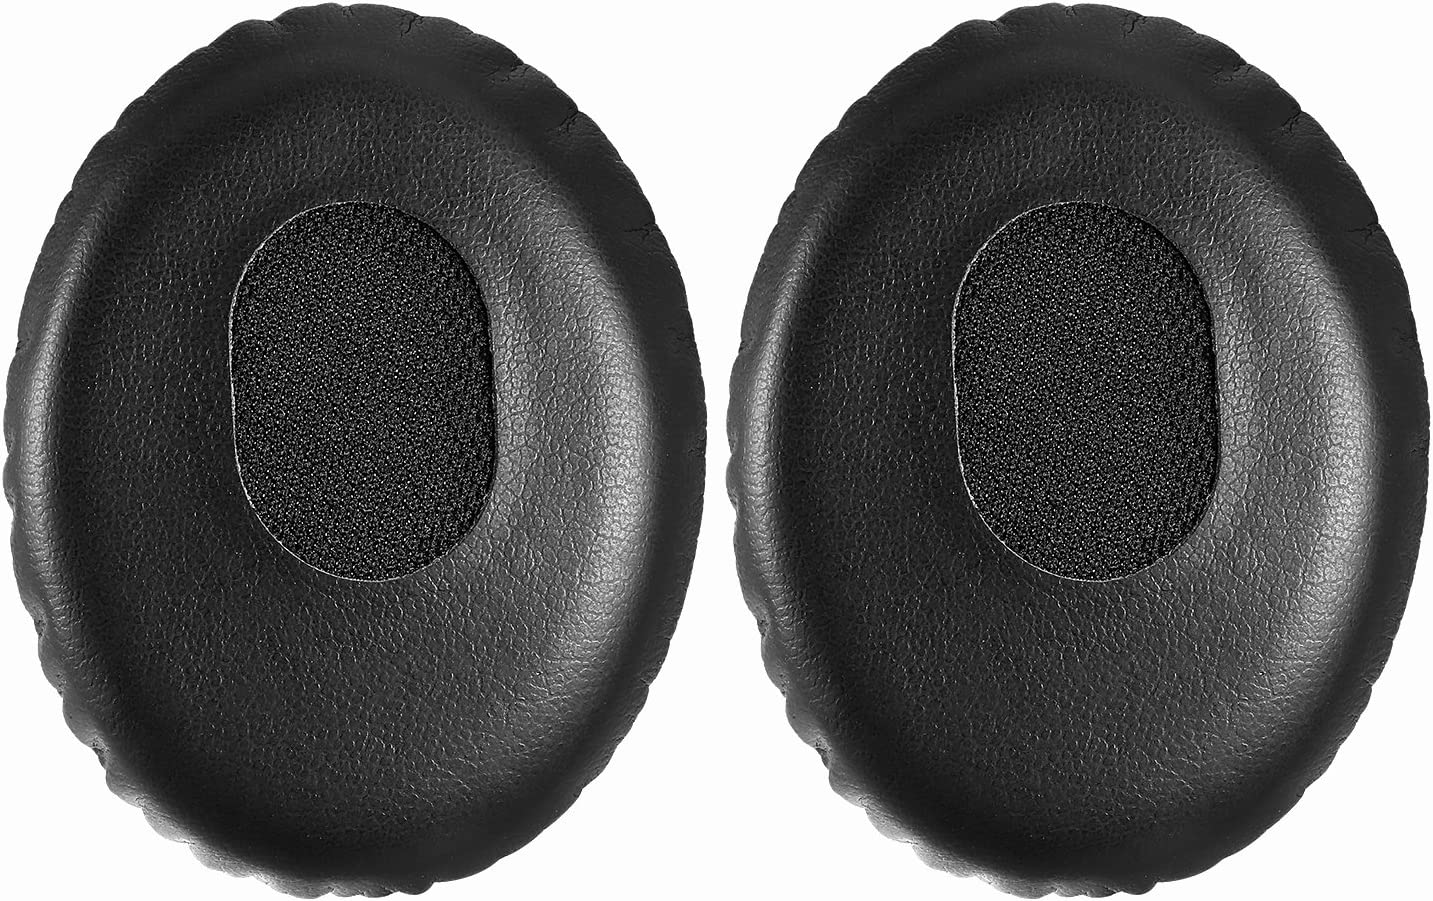 OE1 Headphones ONLY JARMOR Replacement Memory Foam Ear Cushion Cover Kit for Bose QuietComfort 3 Black QC3 Earpads On Ear